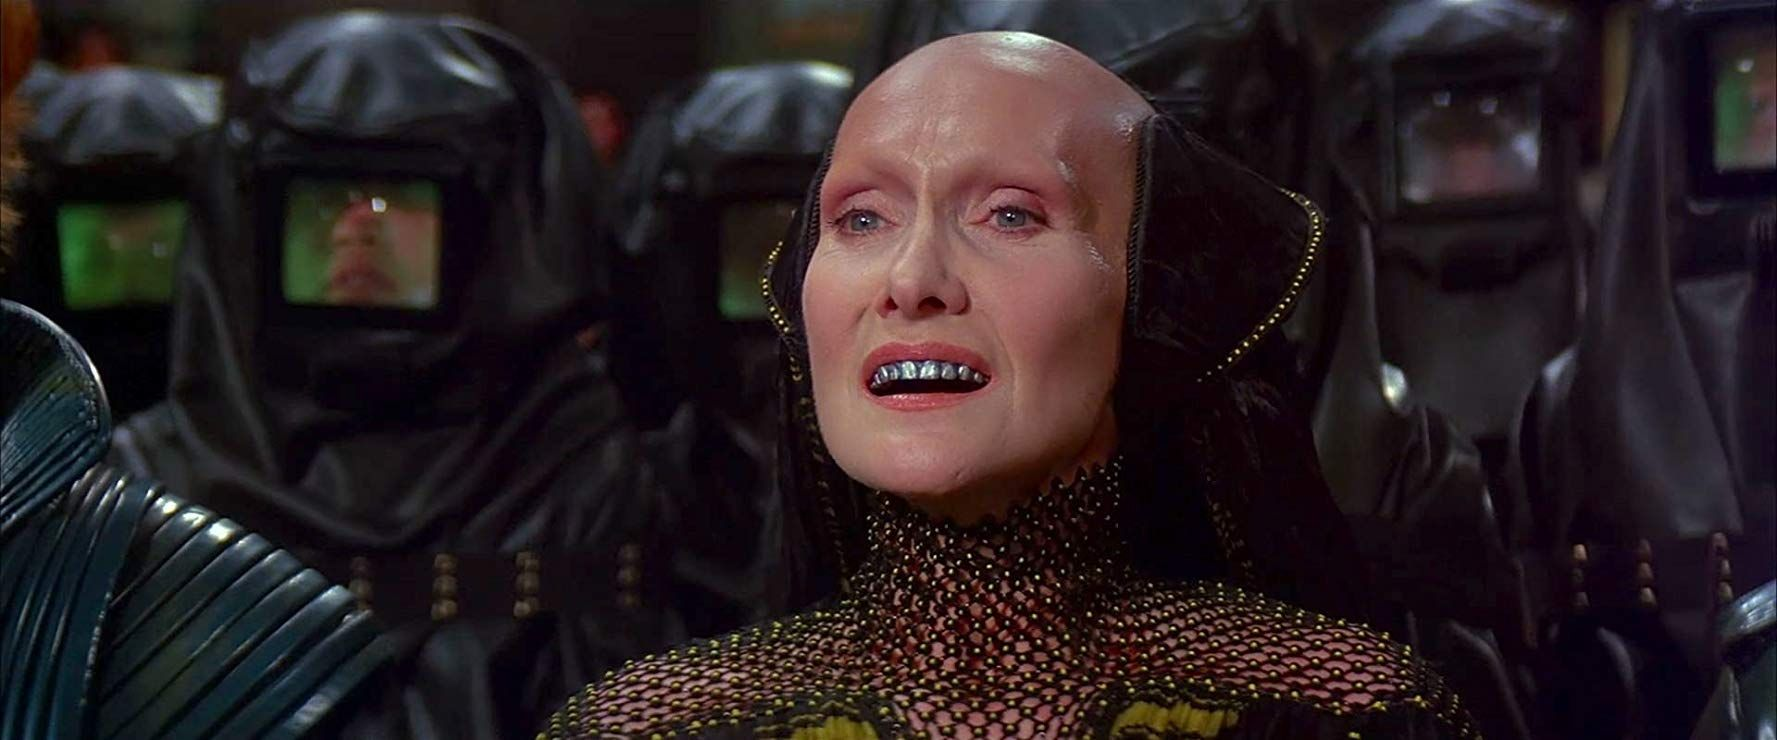 'Dune' Director Is Making a TV Show About the Bene Gesserit (aka the Original Jedi)